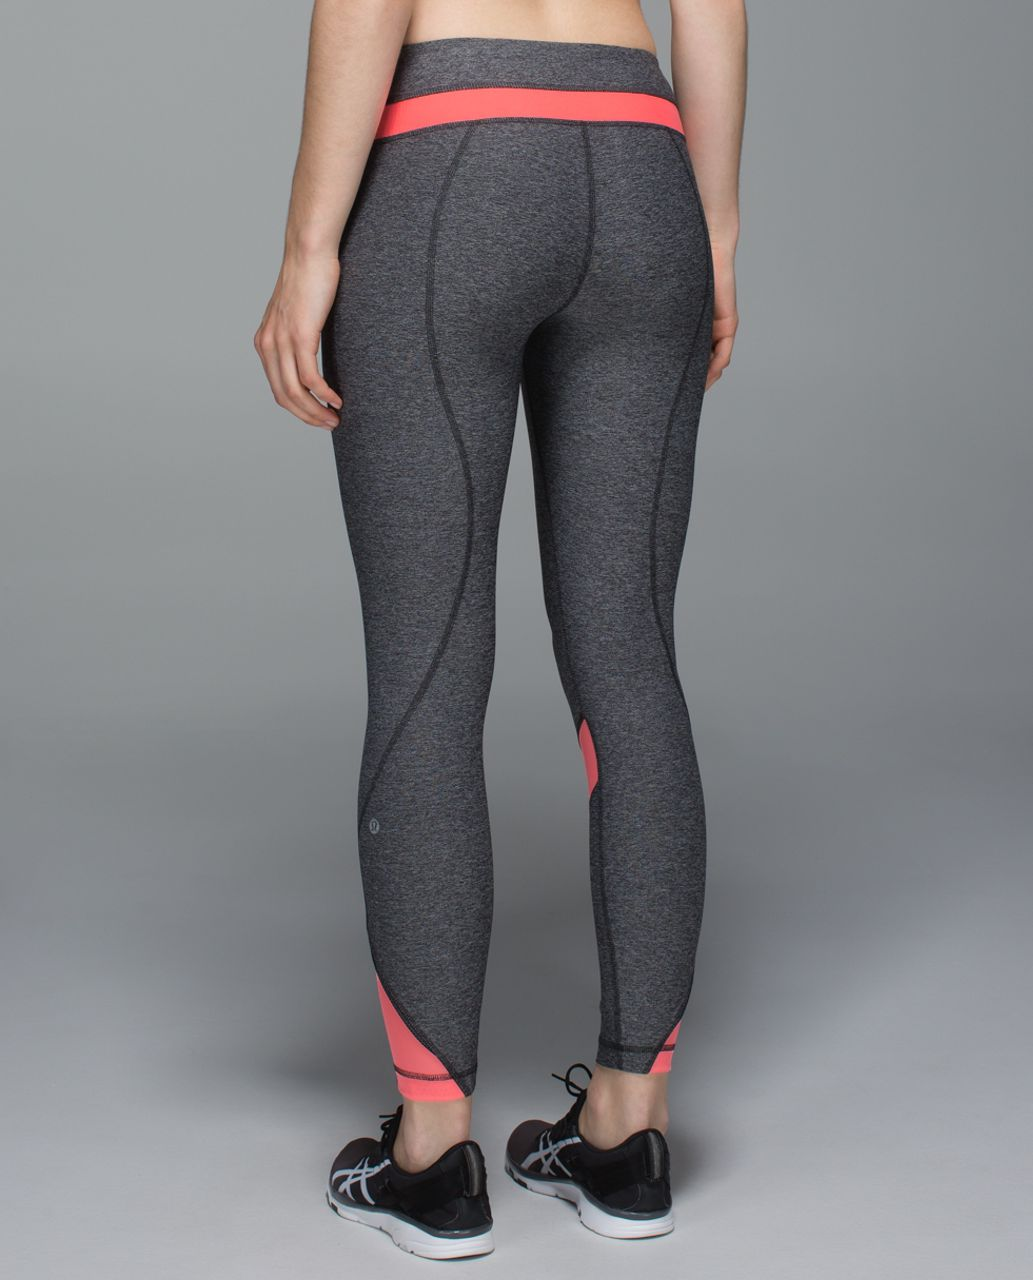 40aa973922 Lululemon Inspire Tight II (Mesh) - Heathered Black / Grapefruit - lulu  fanatics